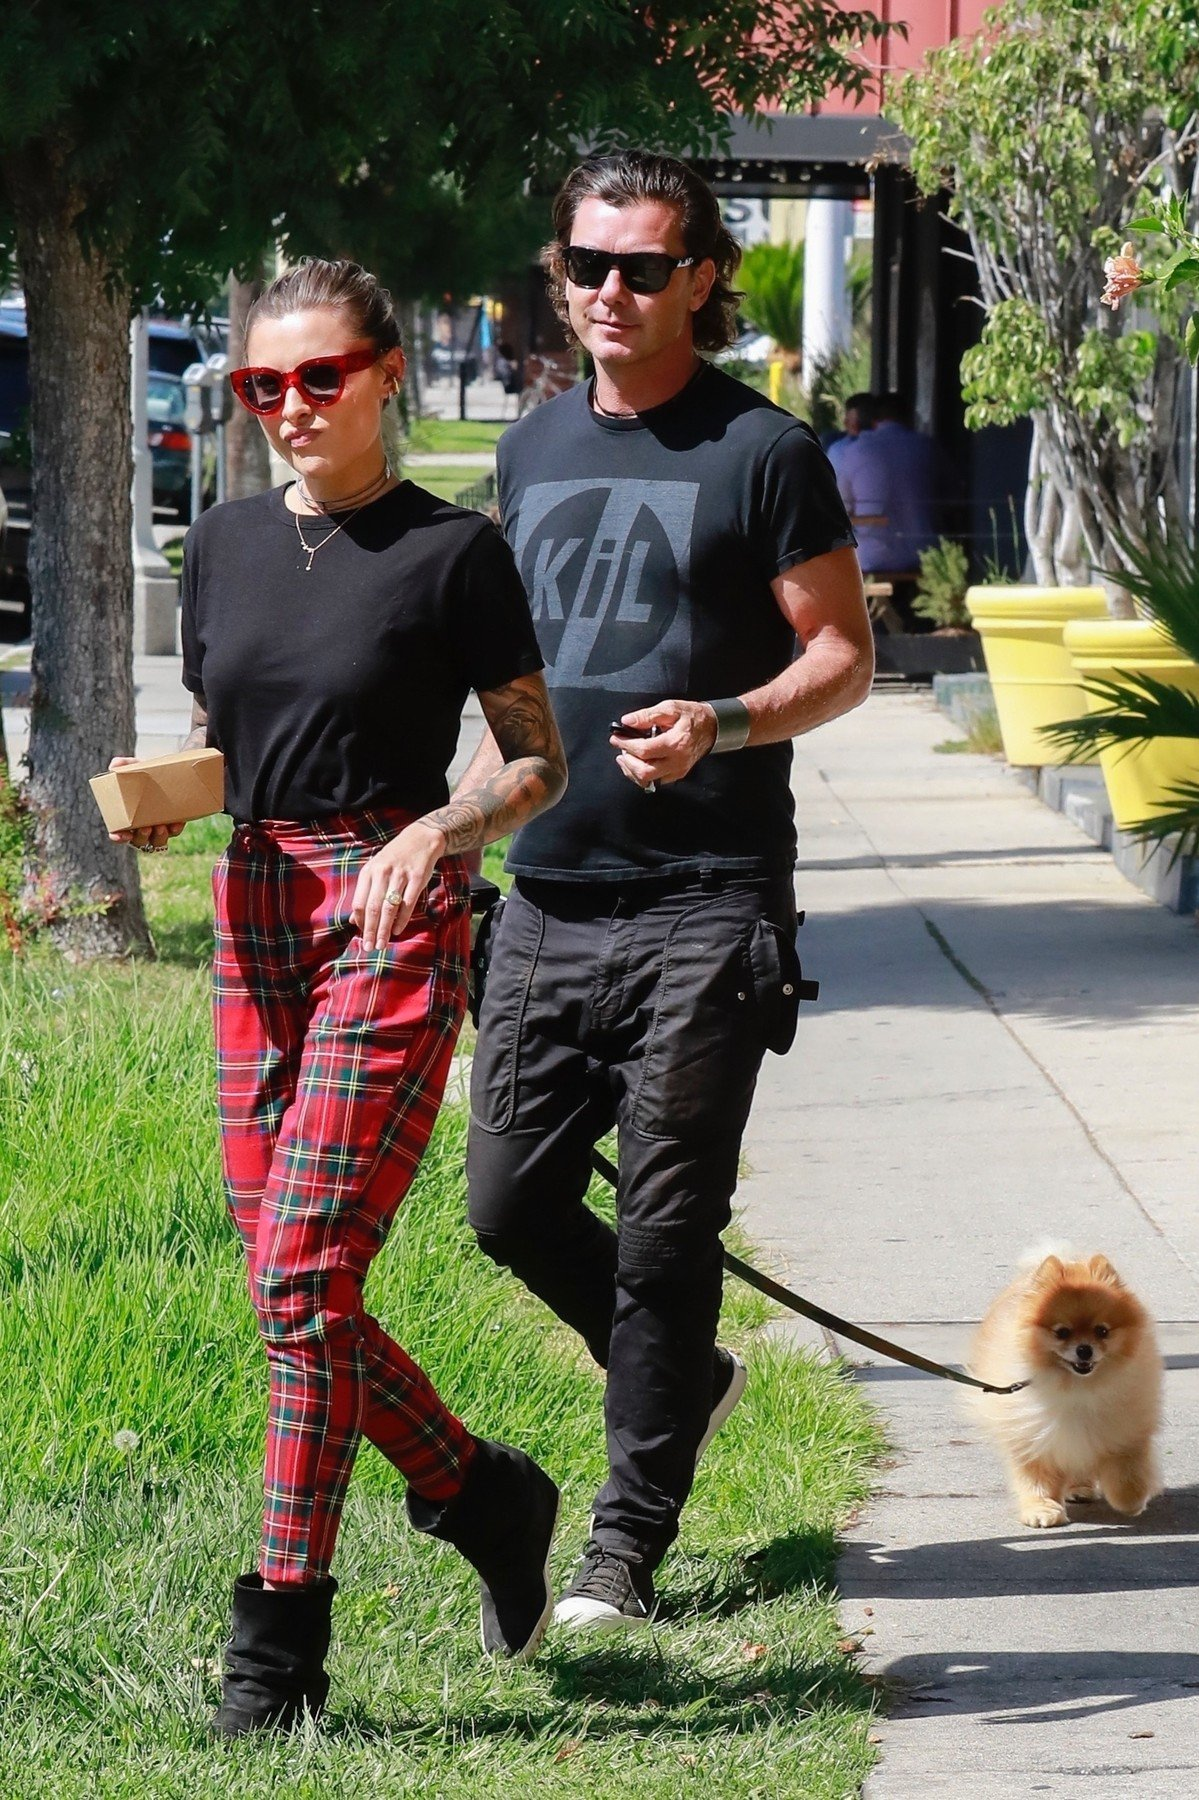 Studio City, CA  - *EXCLUSIVE*  - Gavin Rossdale and girlfriend Sophia Thomalla during a lunch outing in Studio City. Gavin and Sophia look happy as they walk to their car arm in arm with Gavin's Pomeranian.  Pictured: Sophia Thomalla, Gavin Rossdale    *UK Clients - Pictures Containing Children Please Pixelate Face Prior To Publication*, Image: 390465012, License: Rights-managed, Restrictions: , Model Release: no, Credit line: Profimedia, AKM-GSI